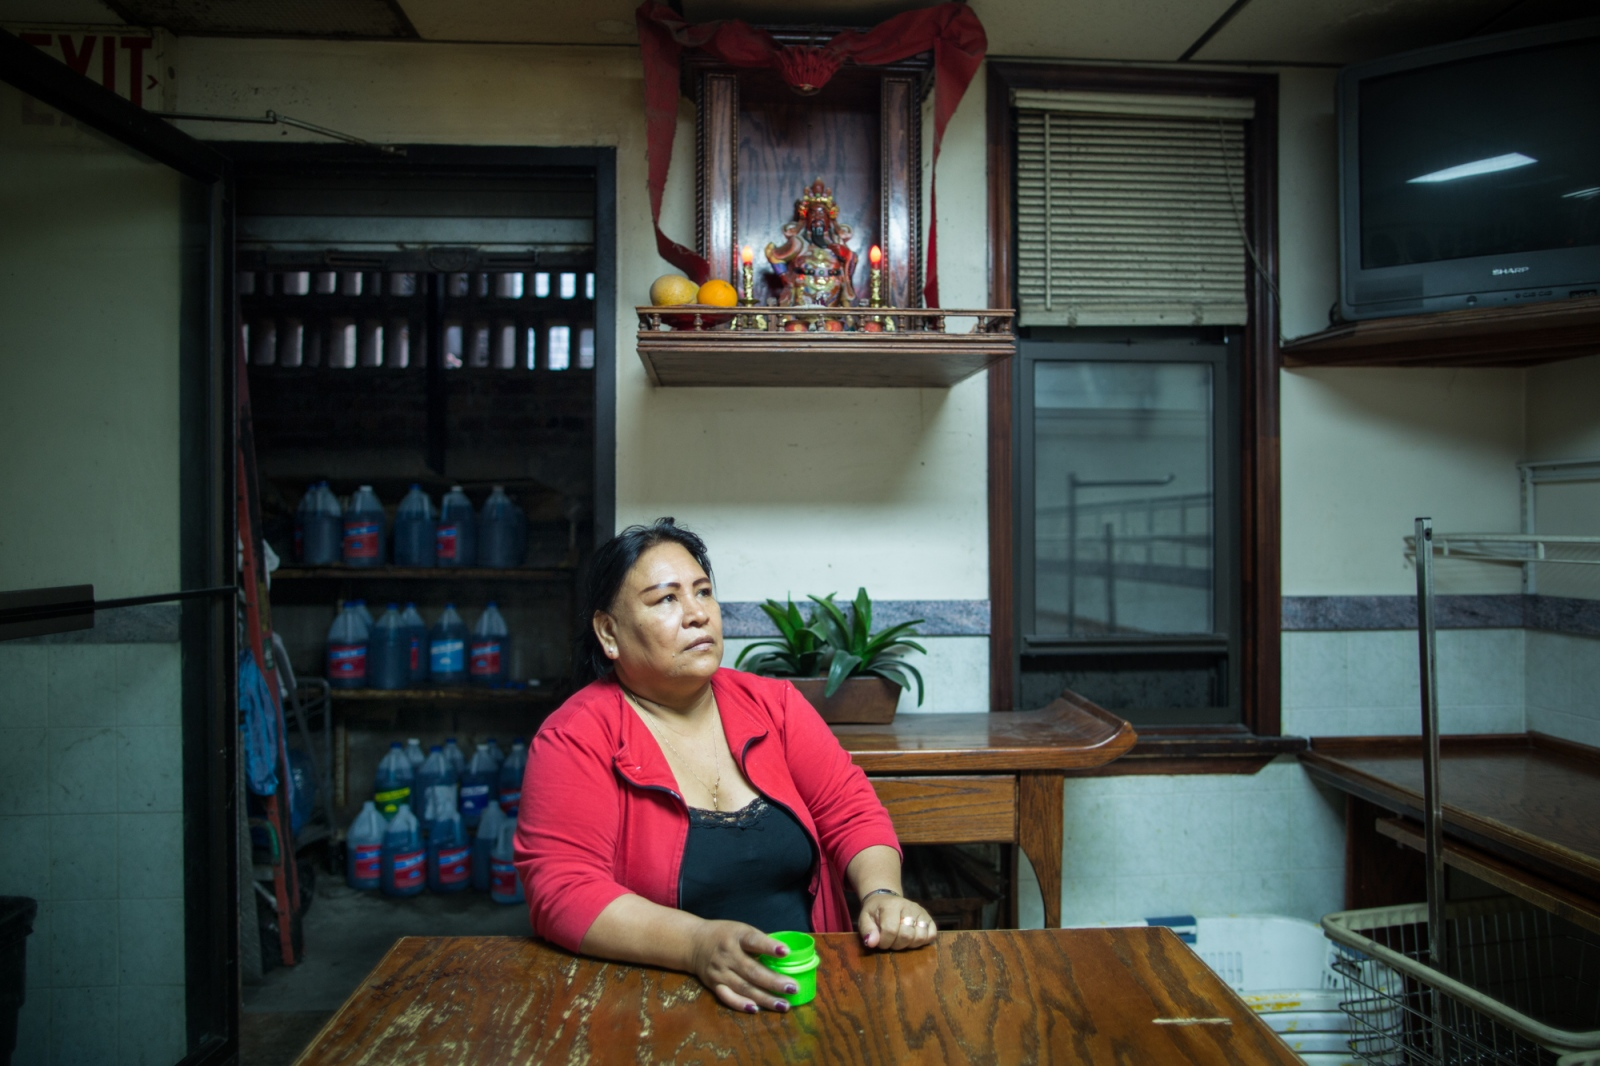 Every Thursday Juanita goes to the laundry on 56th Street and Third Avenue to wash the secondhand clothing that she sells every Friday and Saturday outside the church of St. Jacobi. Most times, her husband Carlos and children help her in the washing, ironing and put the clothes into hangers for sale. Sunset Park, Brooklyn, New York, 2016.